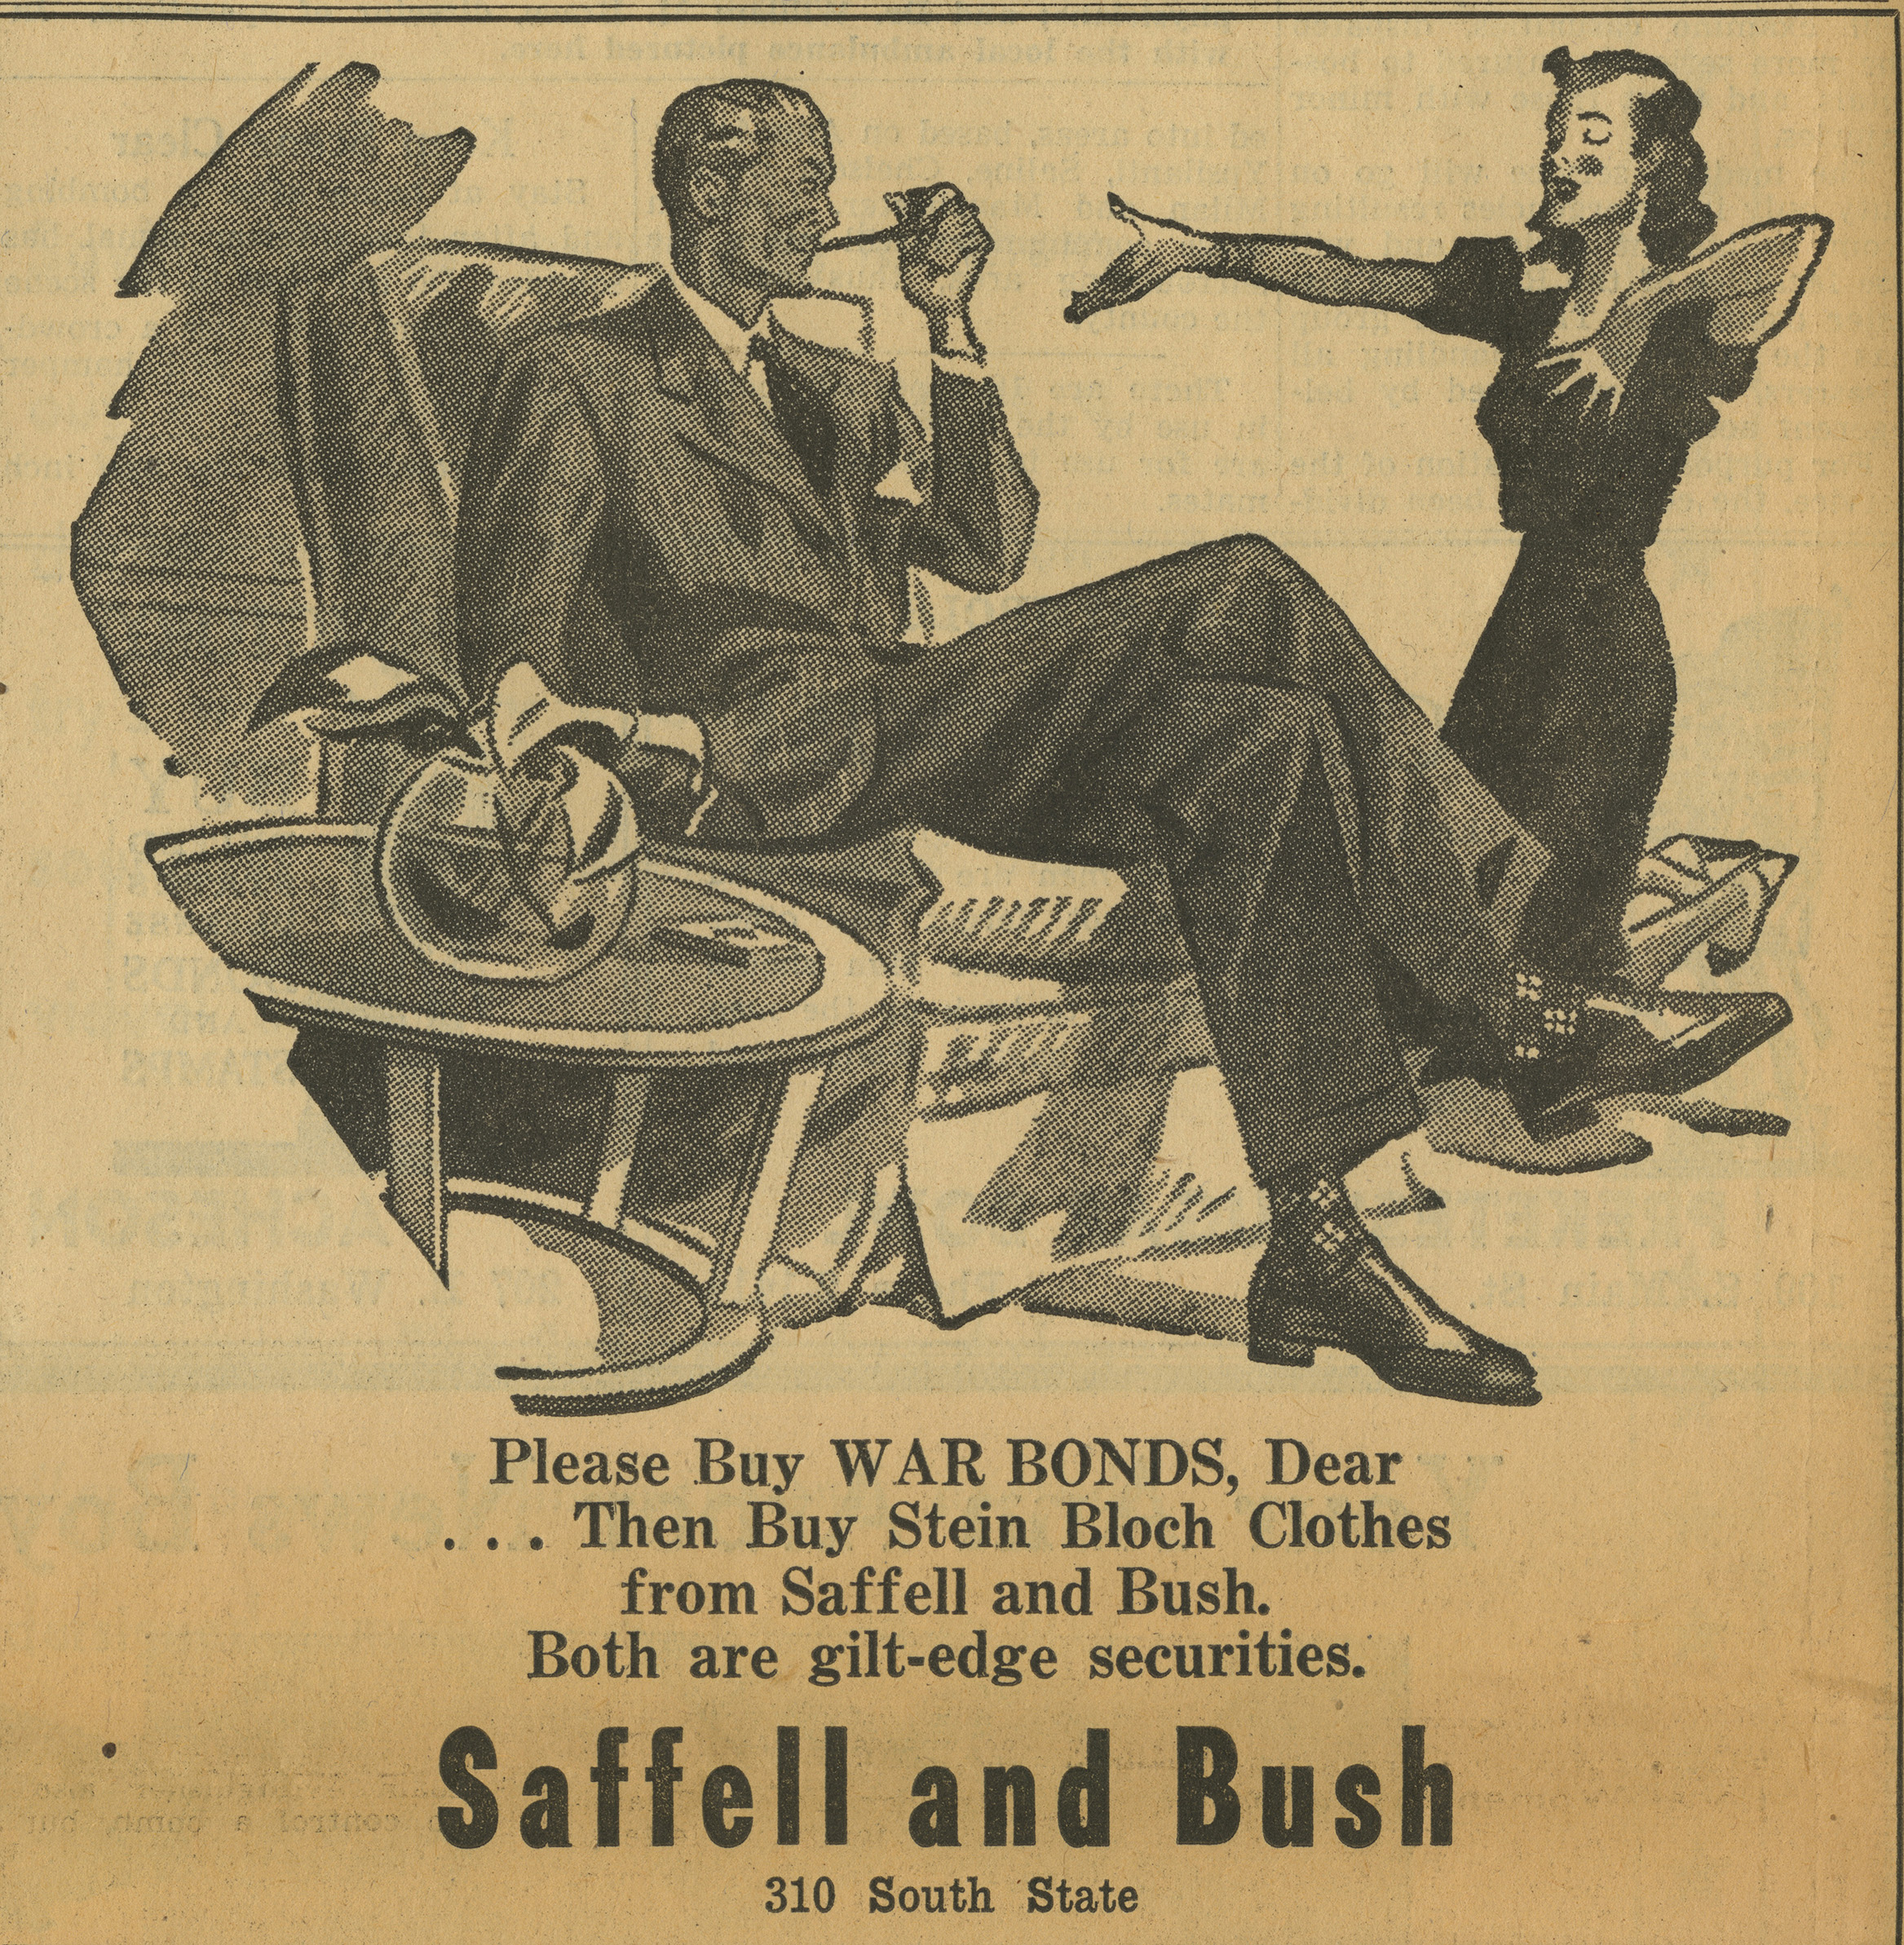 Saffell and Bush [advertisement] image